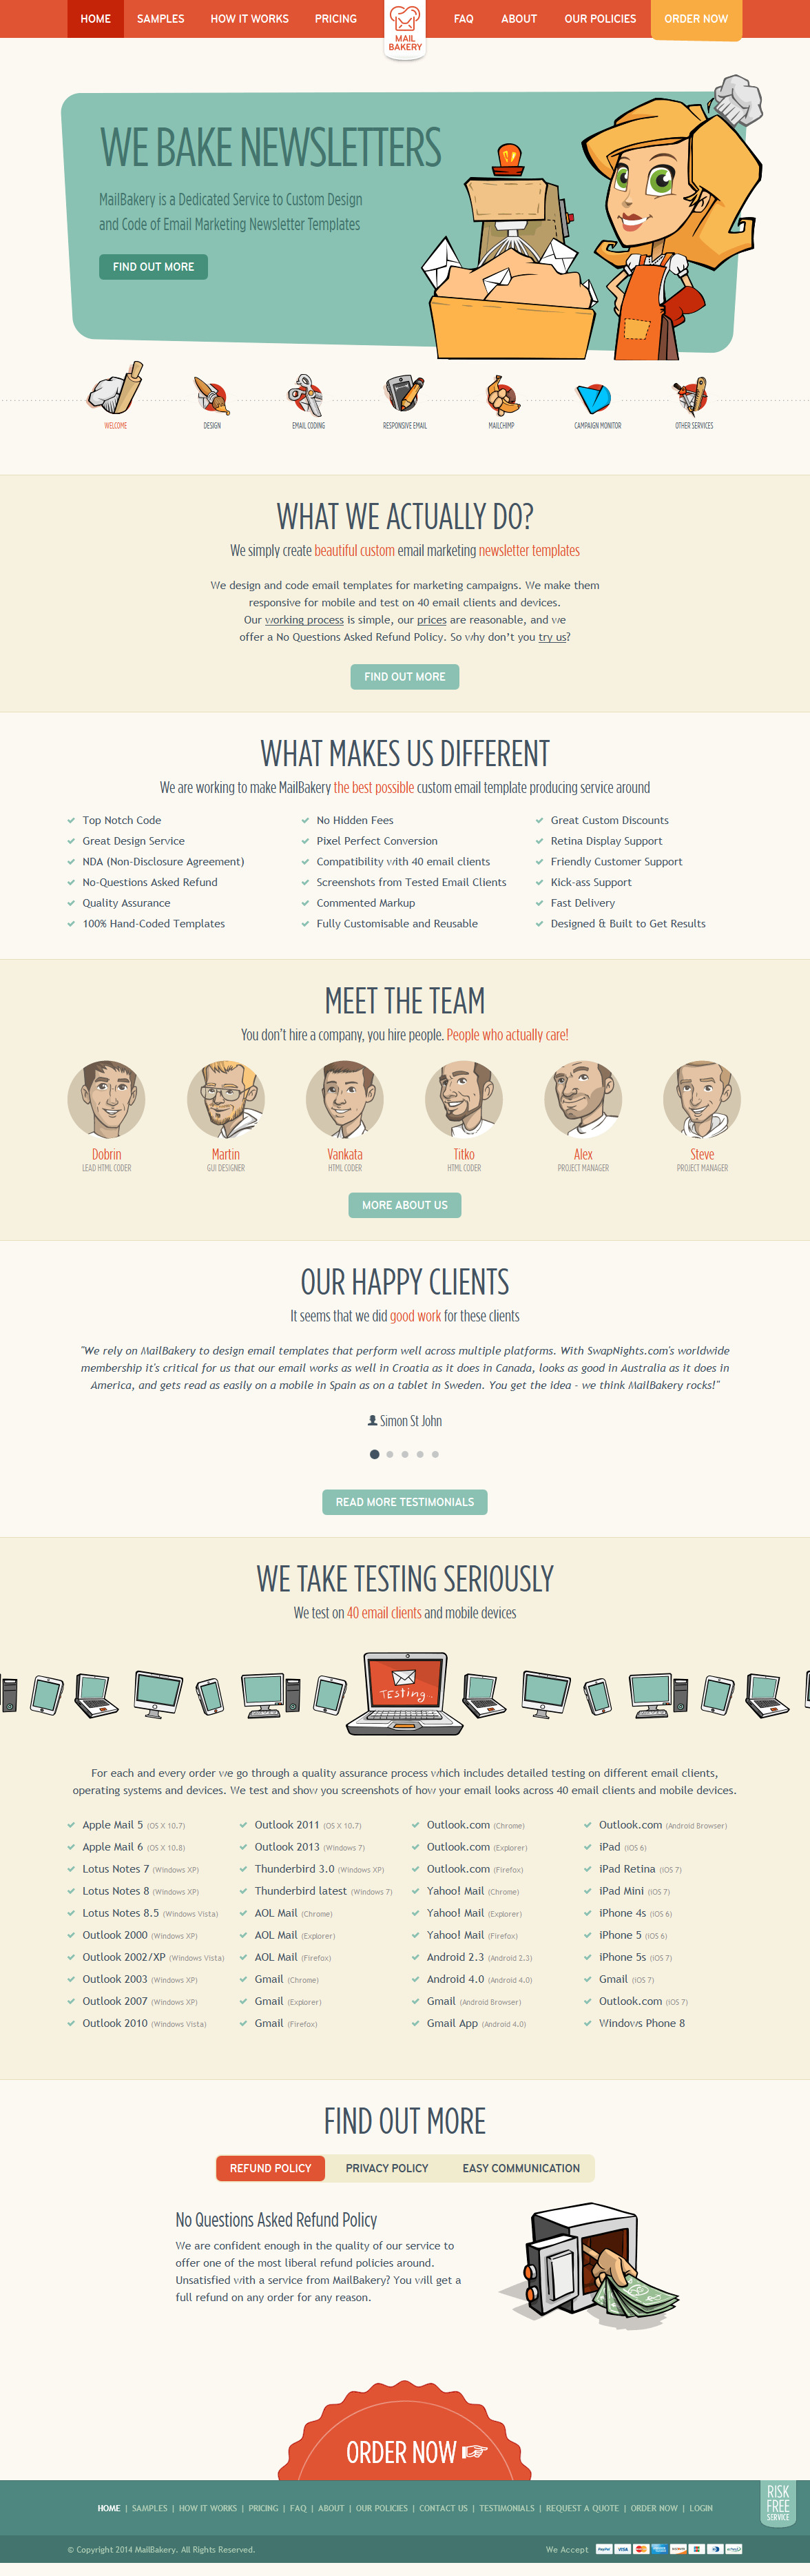 HTML Email Template Coding Service from MailBakery 2014-03-26 18-07-47